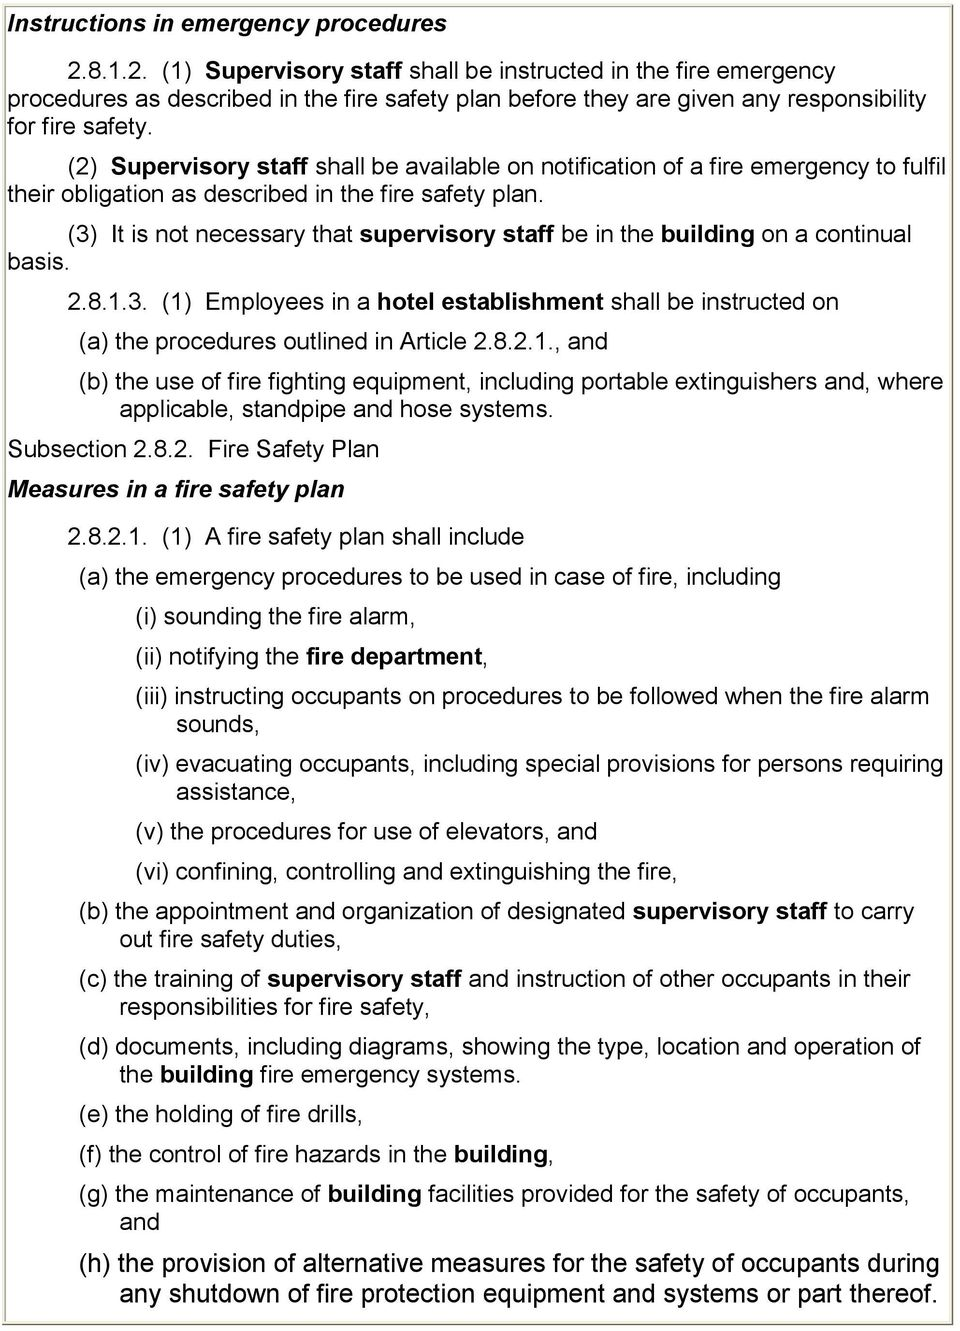 (2) Supervisory staff shall be available on notification of a fire emergency to fulfil their obligation as described in the fire safety plan.